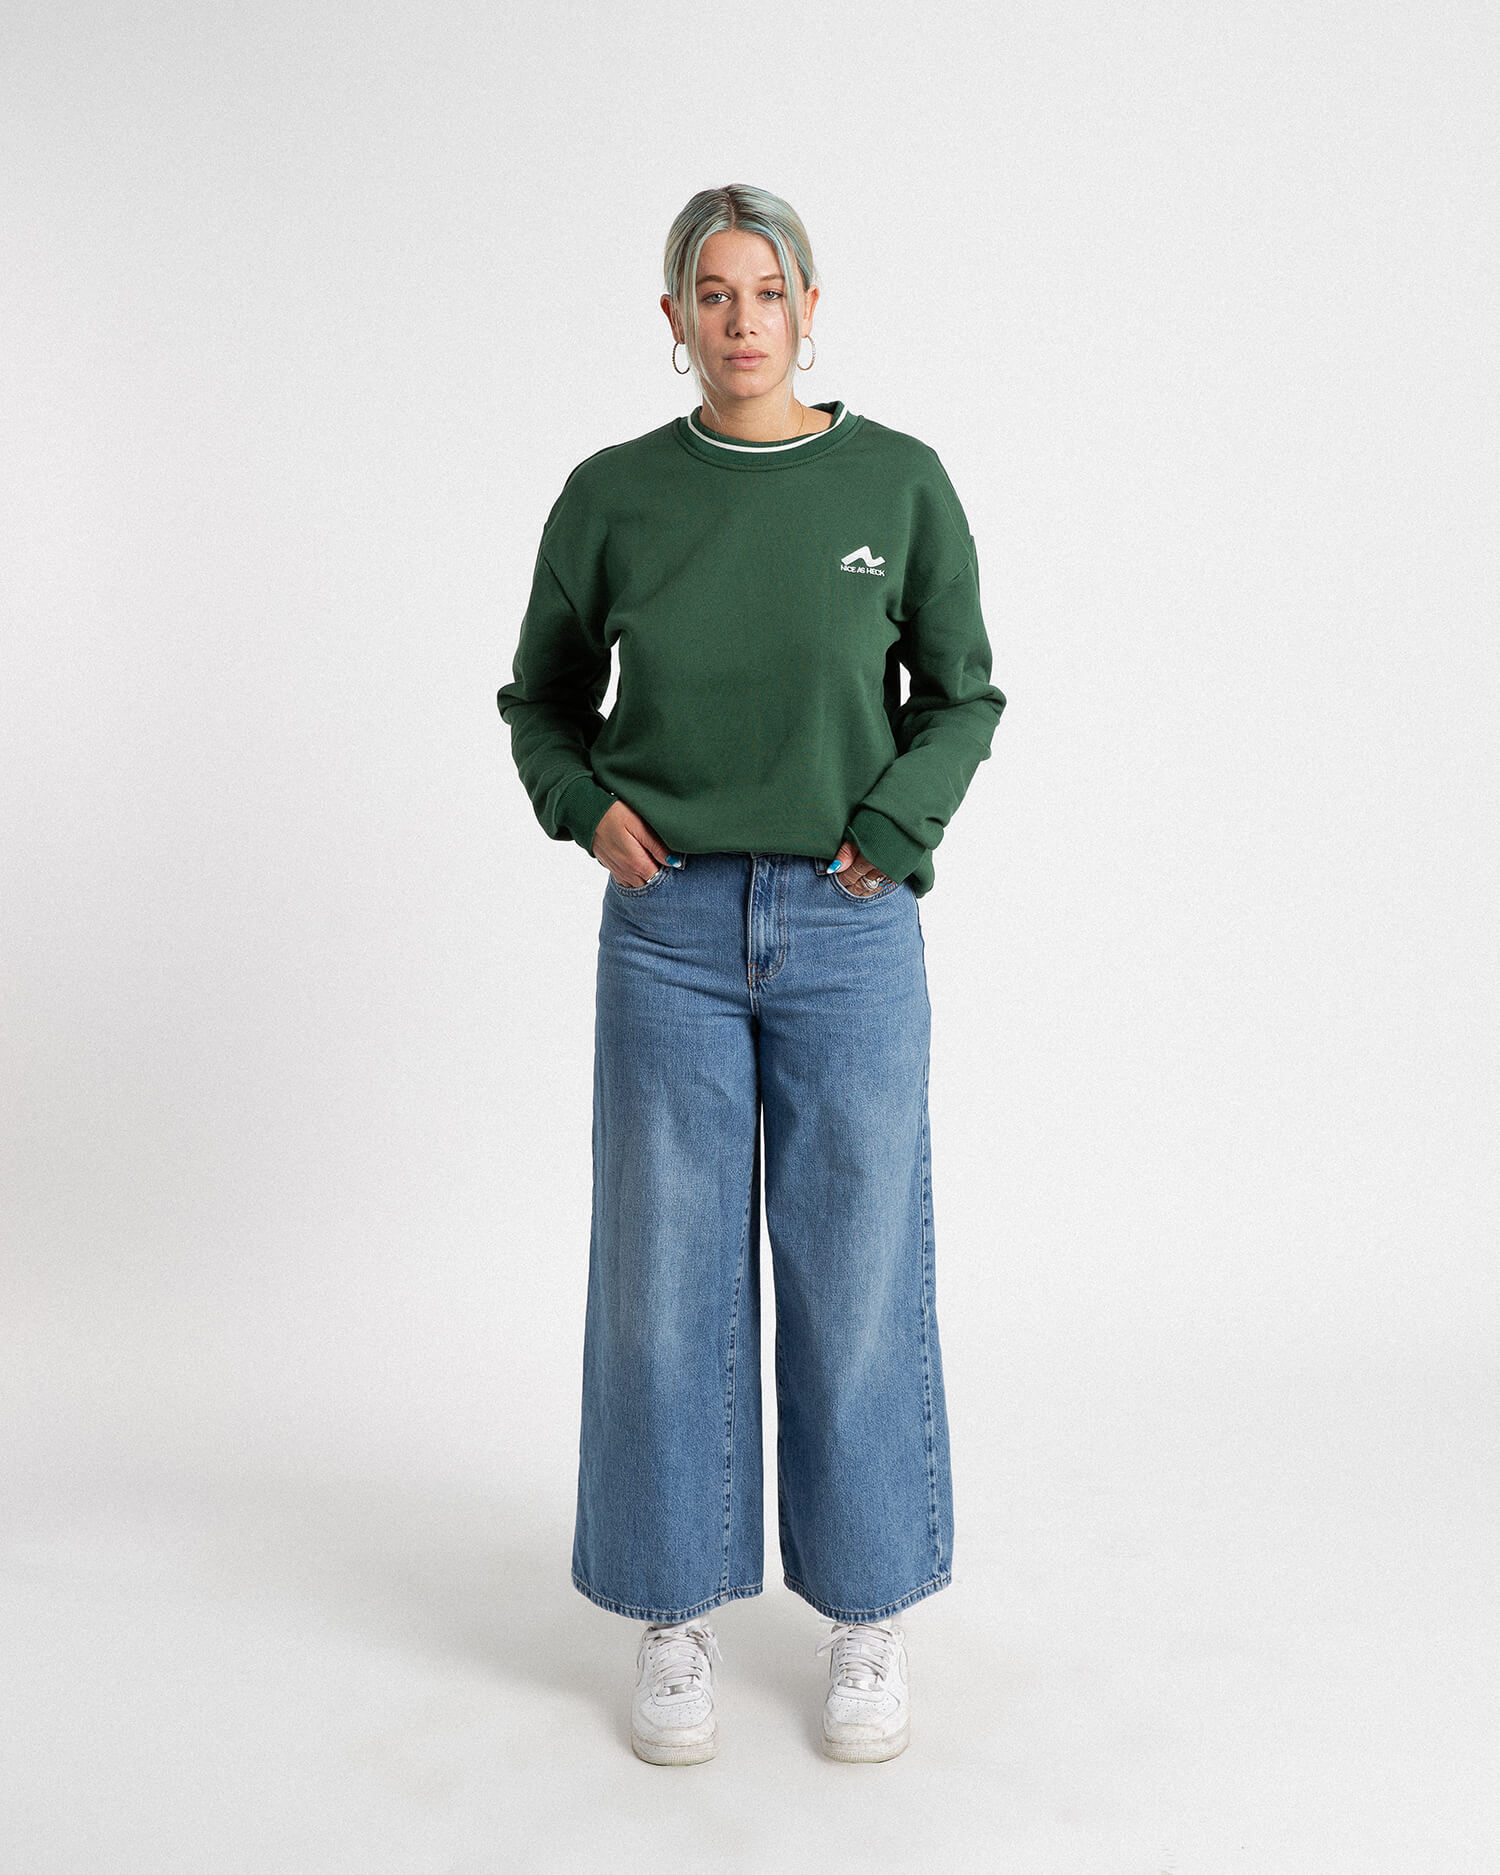 female model front view of green campfire crewneck